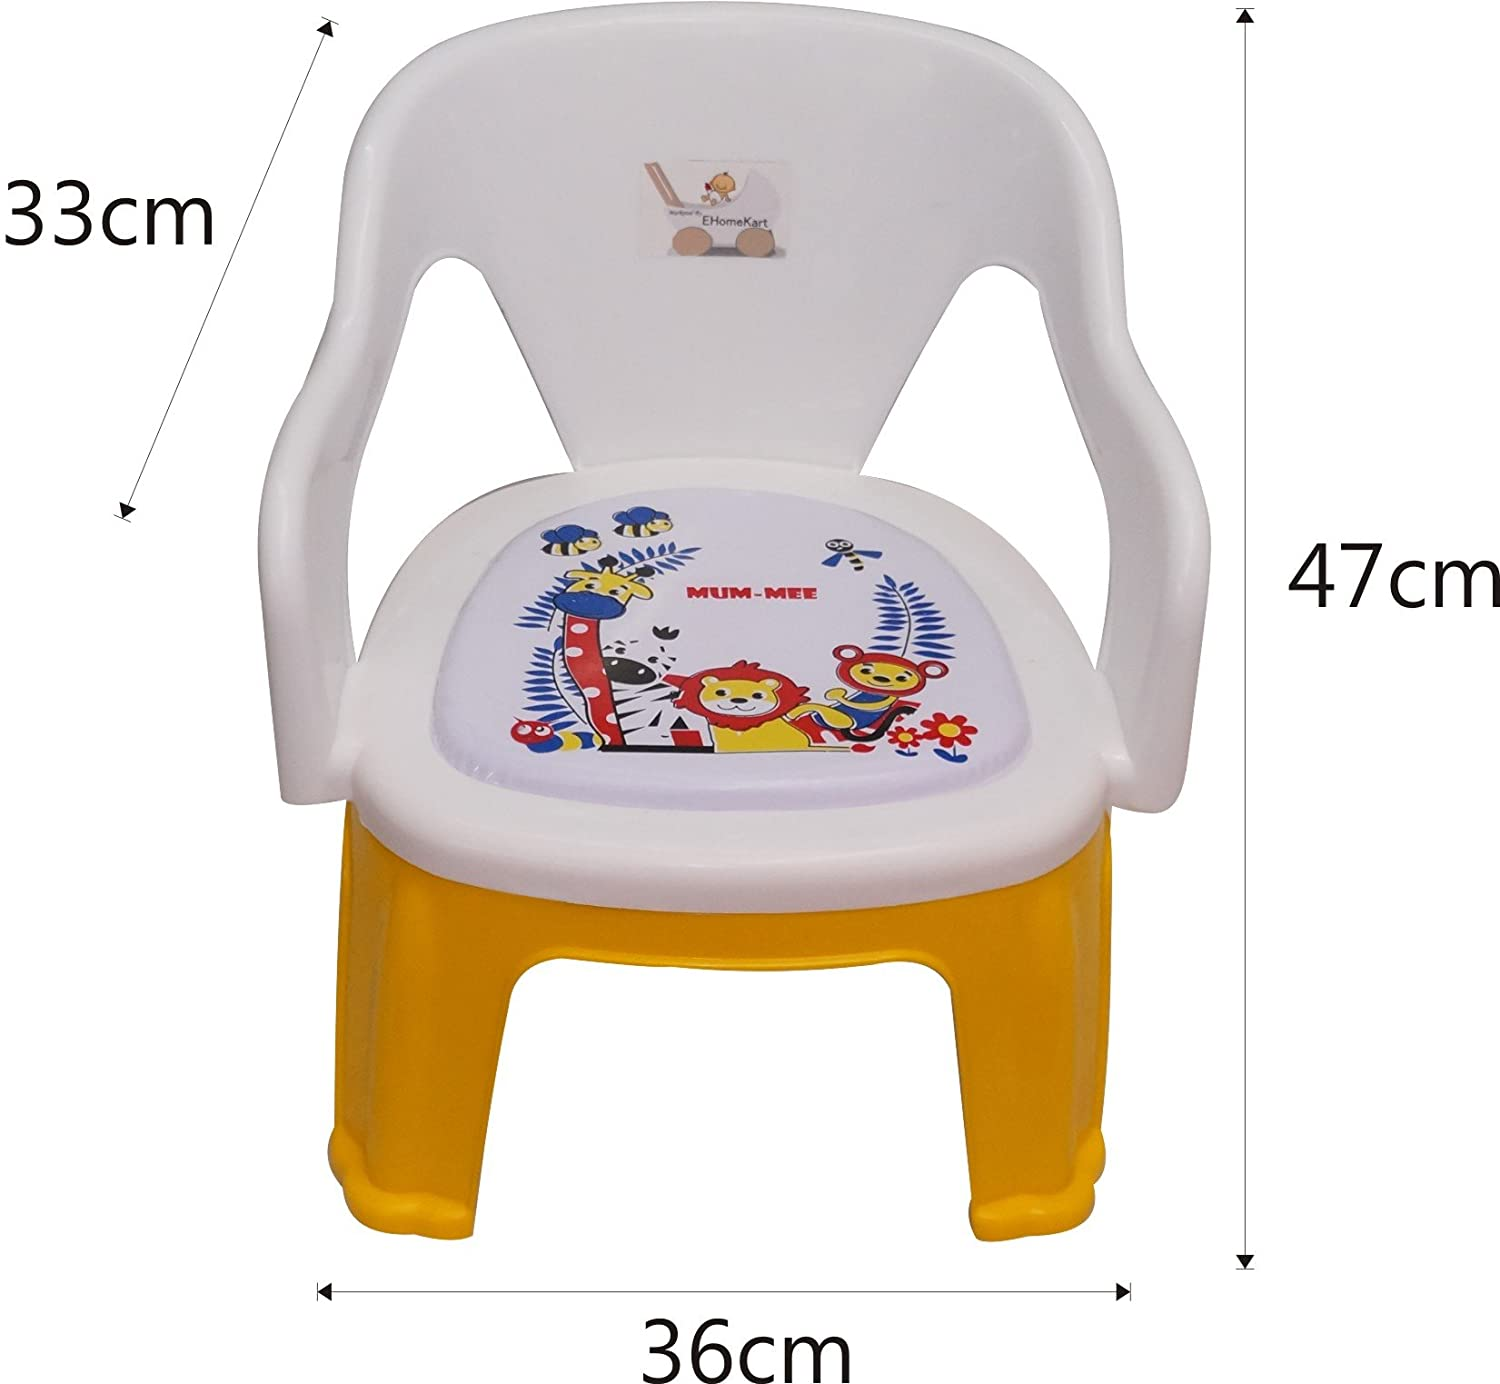 Wondrous Buy Baby Chu Chu Chair For Kids 36 X 33 X 47 Cm Online Gmtry Best Dining Table And Chair Ideas Images Gmtryco